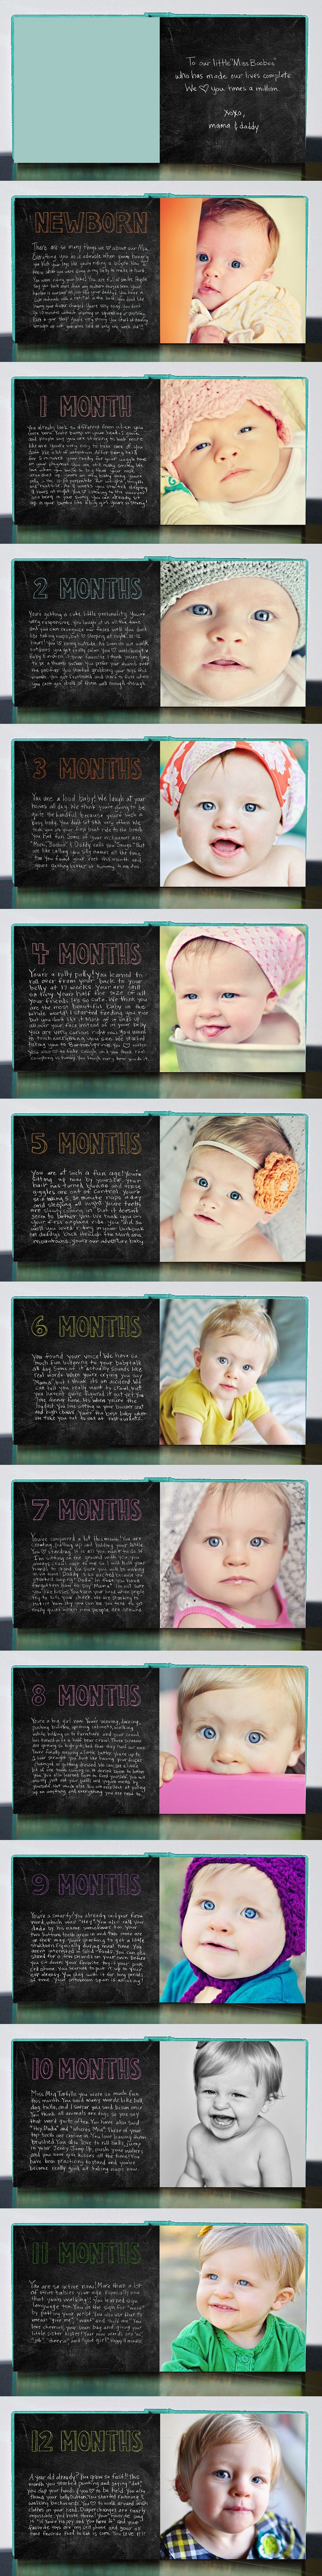 sweet baby book - I love this idea of documenting the differences each month